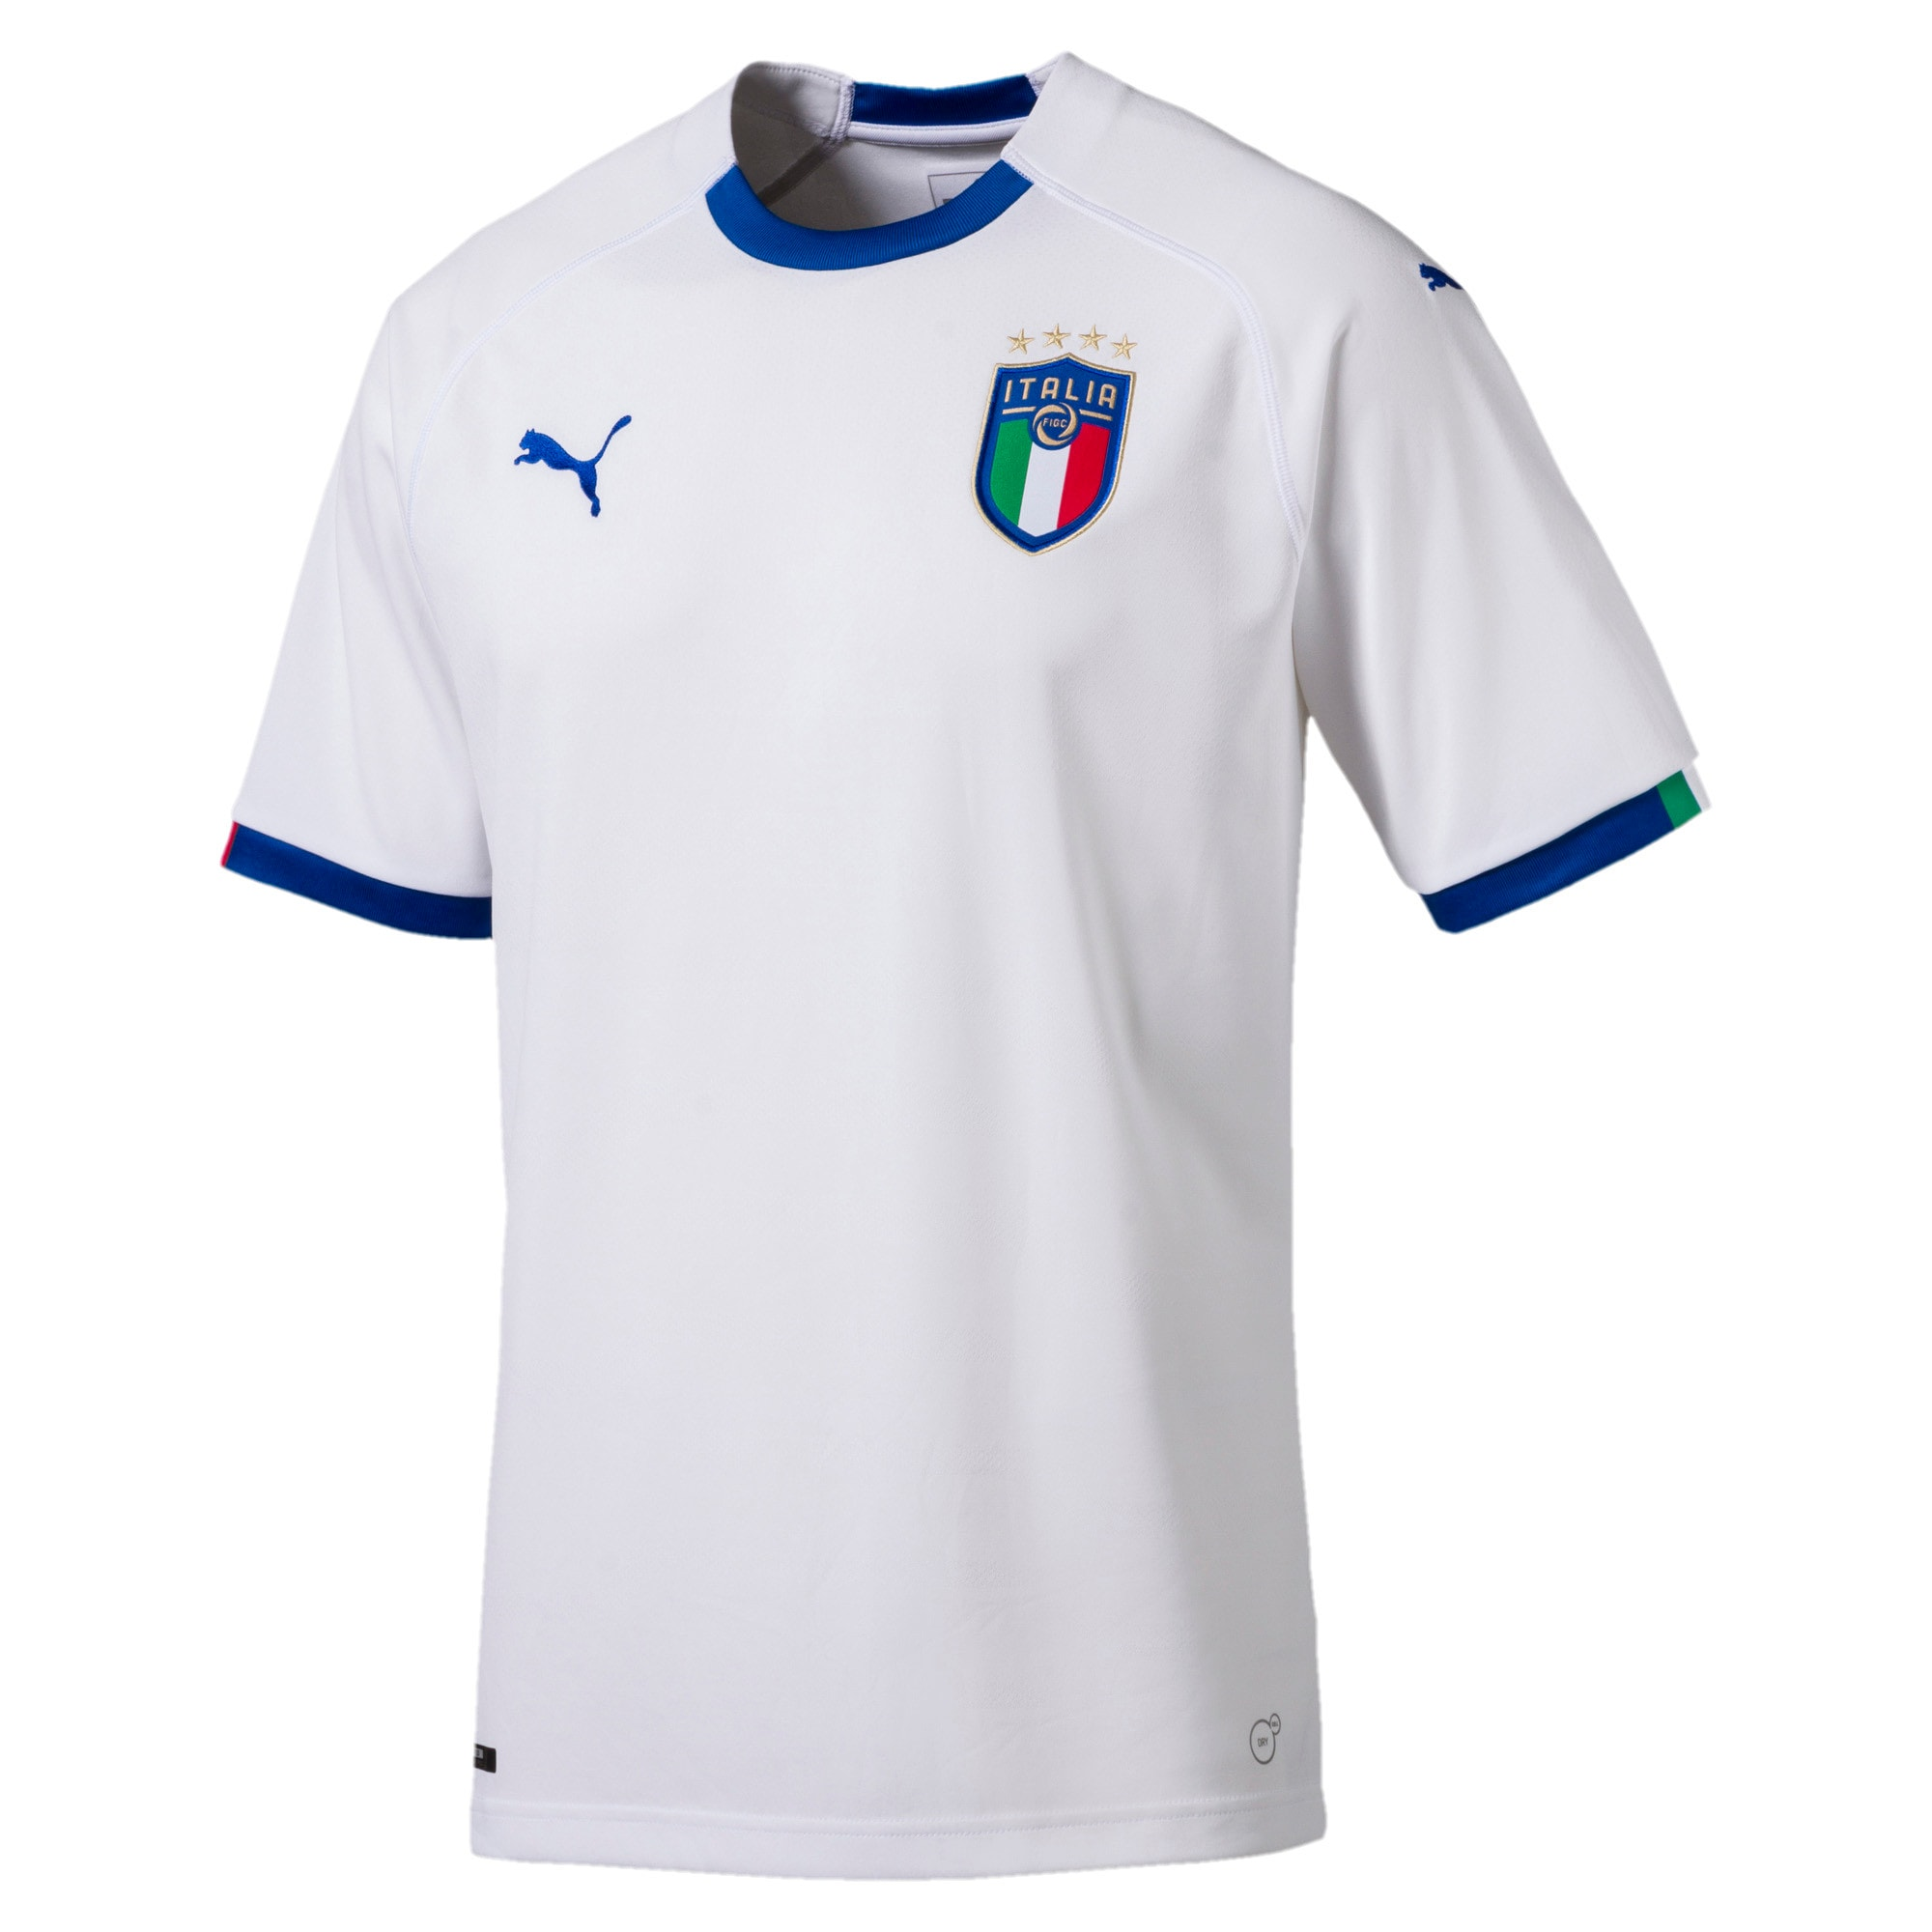 Thumbnail 4 of FIGC Away Men's Short Sleeve Replica Shirt, Puma White-Team Power Blue, medium